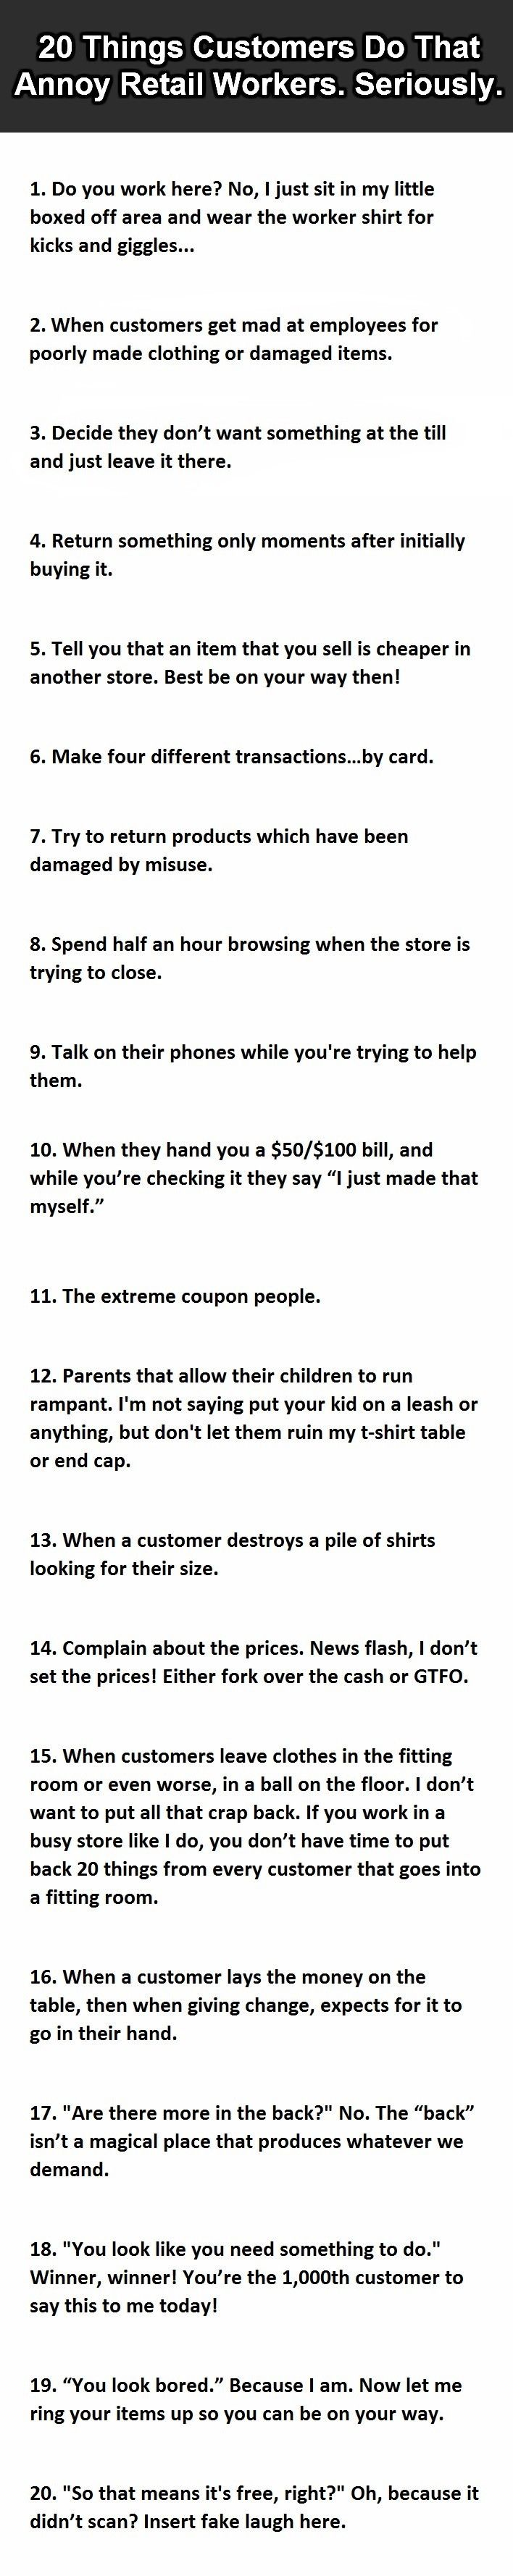 20 Things Customers Do That Annoy Retail Workers.